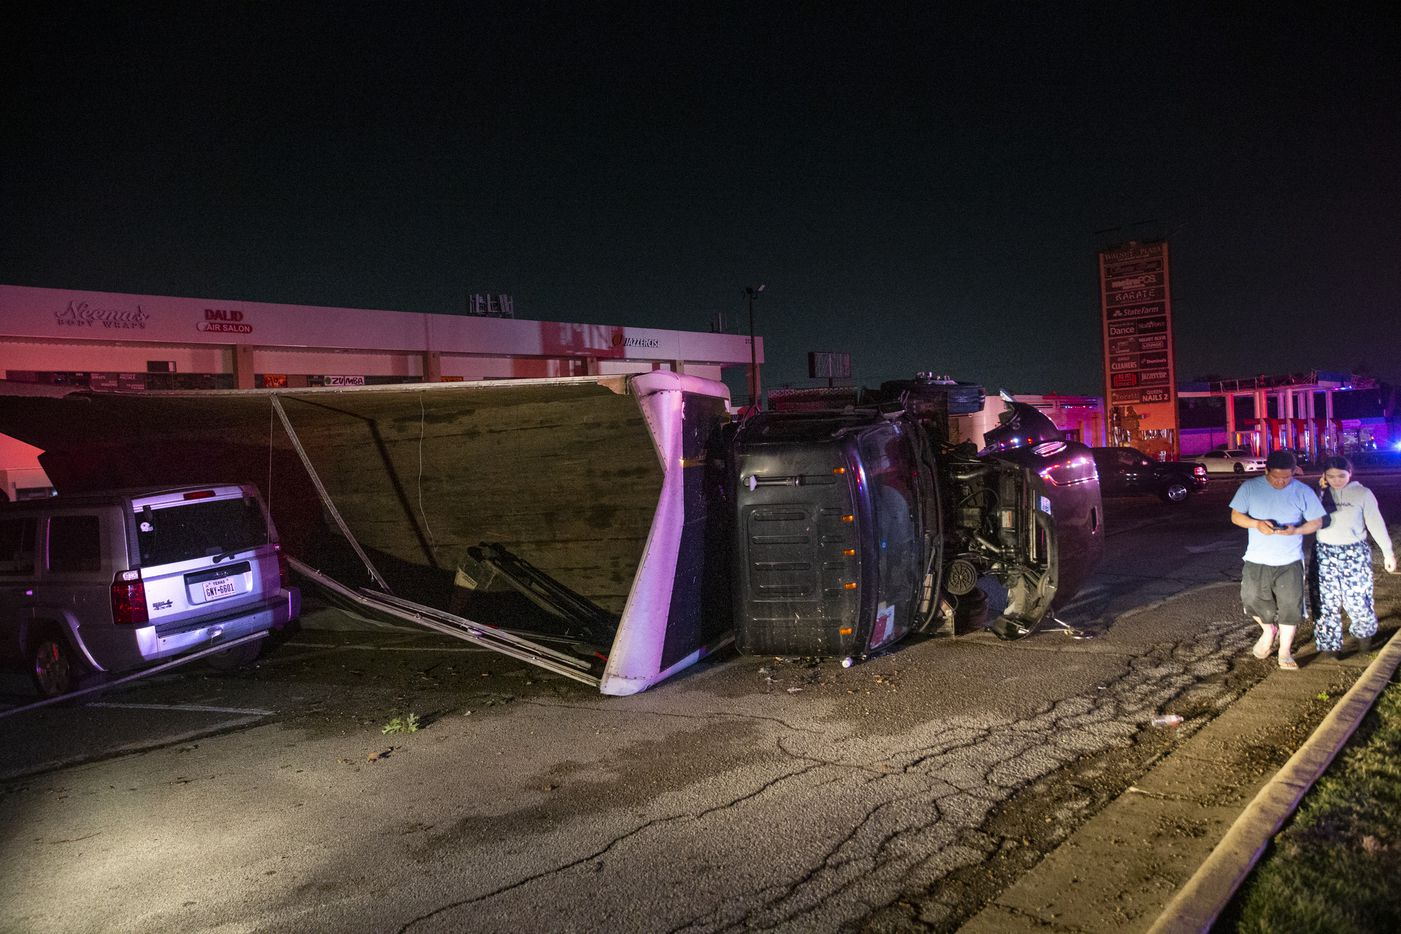 People walk past an overturned semi-truck at a shopping center on the corner of Walnut Hill Lane and Marsh Lane after a tornado hit parts of northern Dallas on Sunday, Oct. 20, 2019.